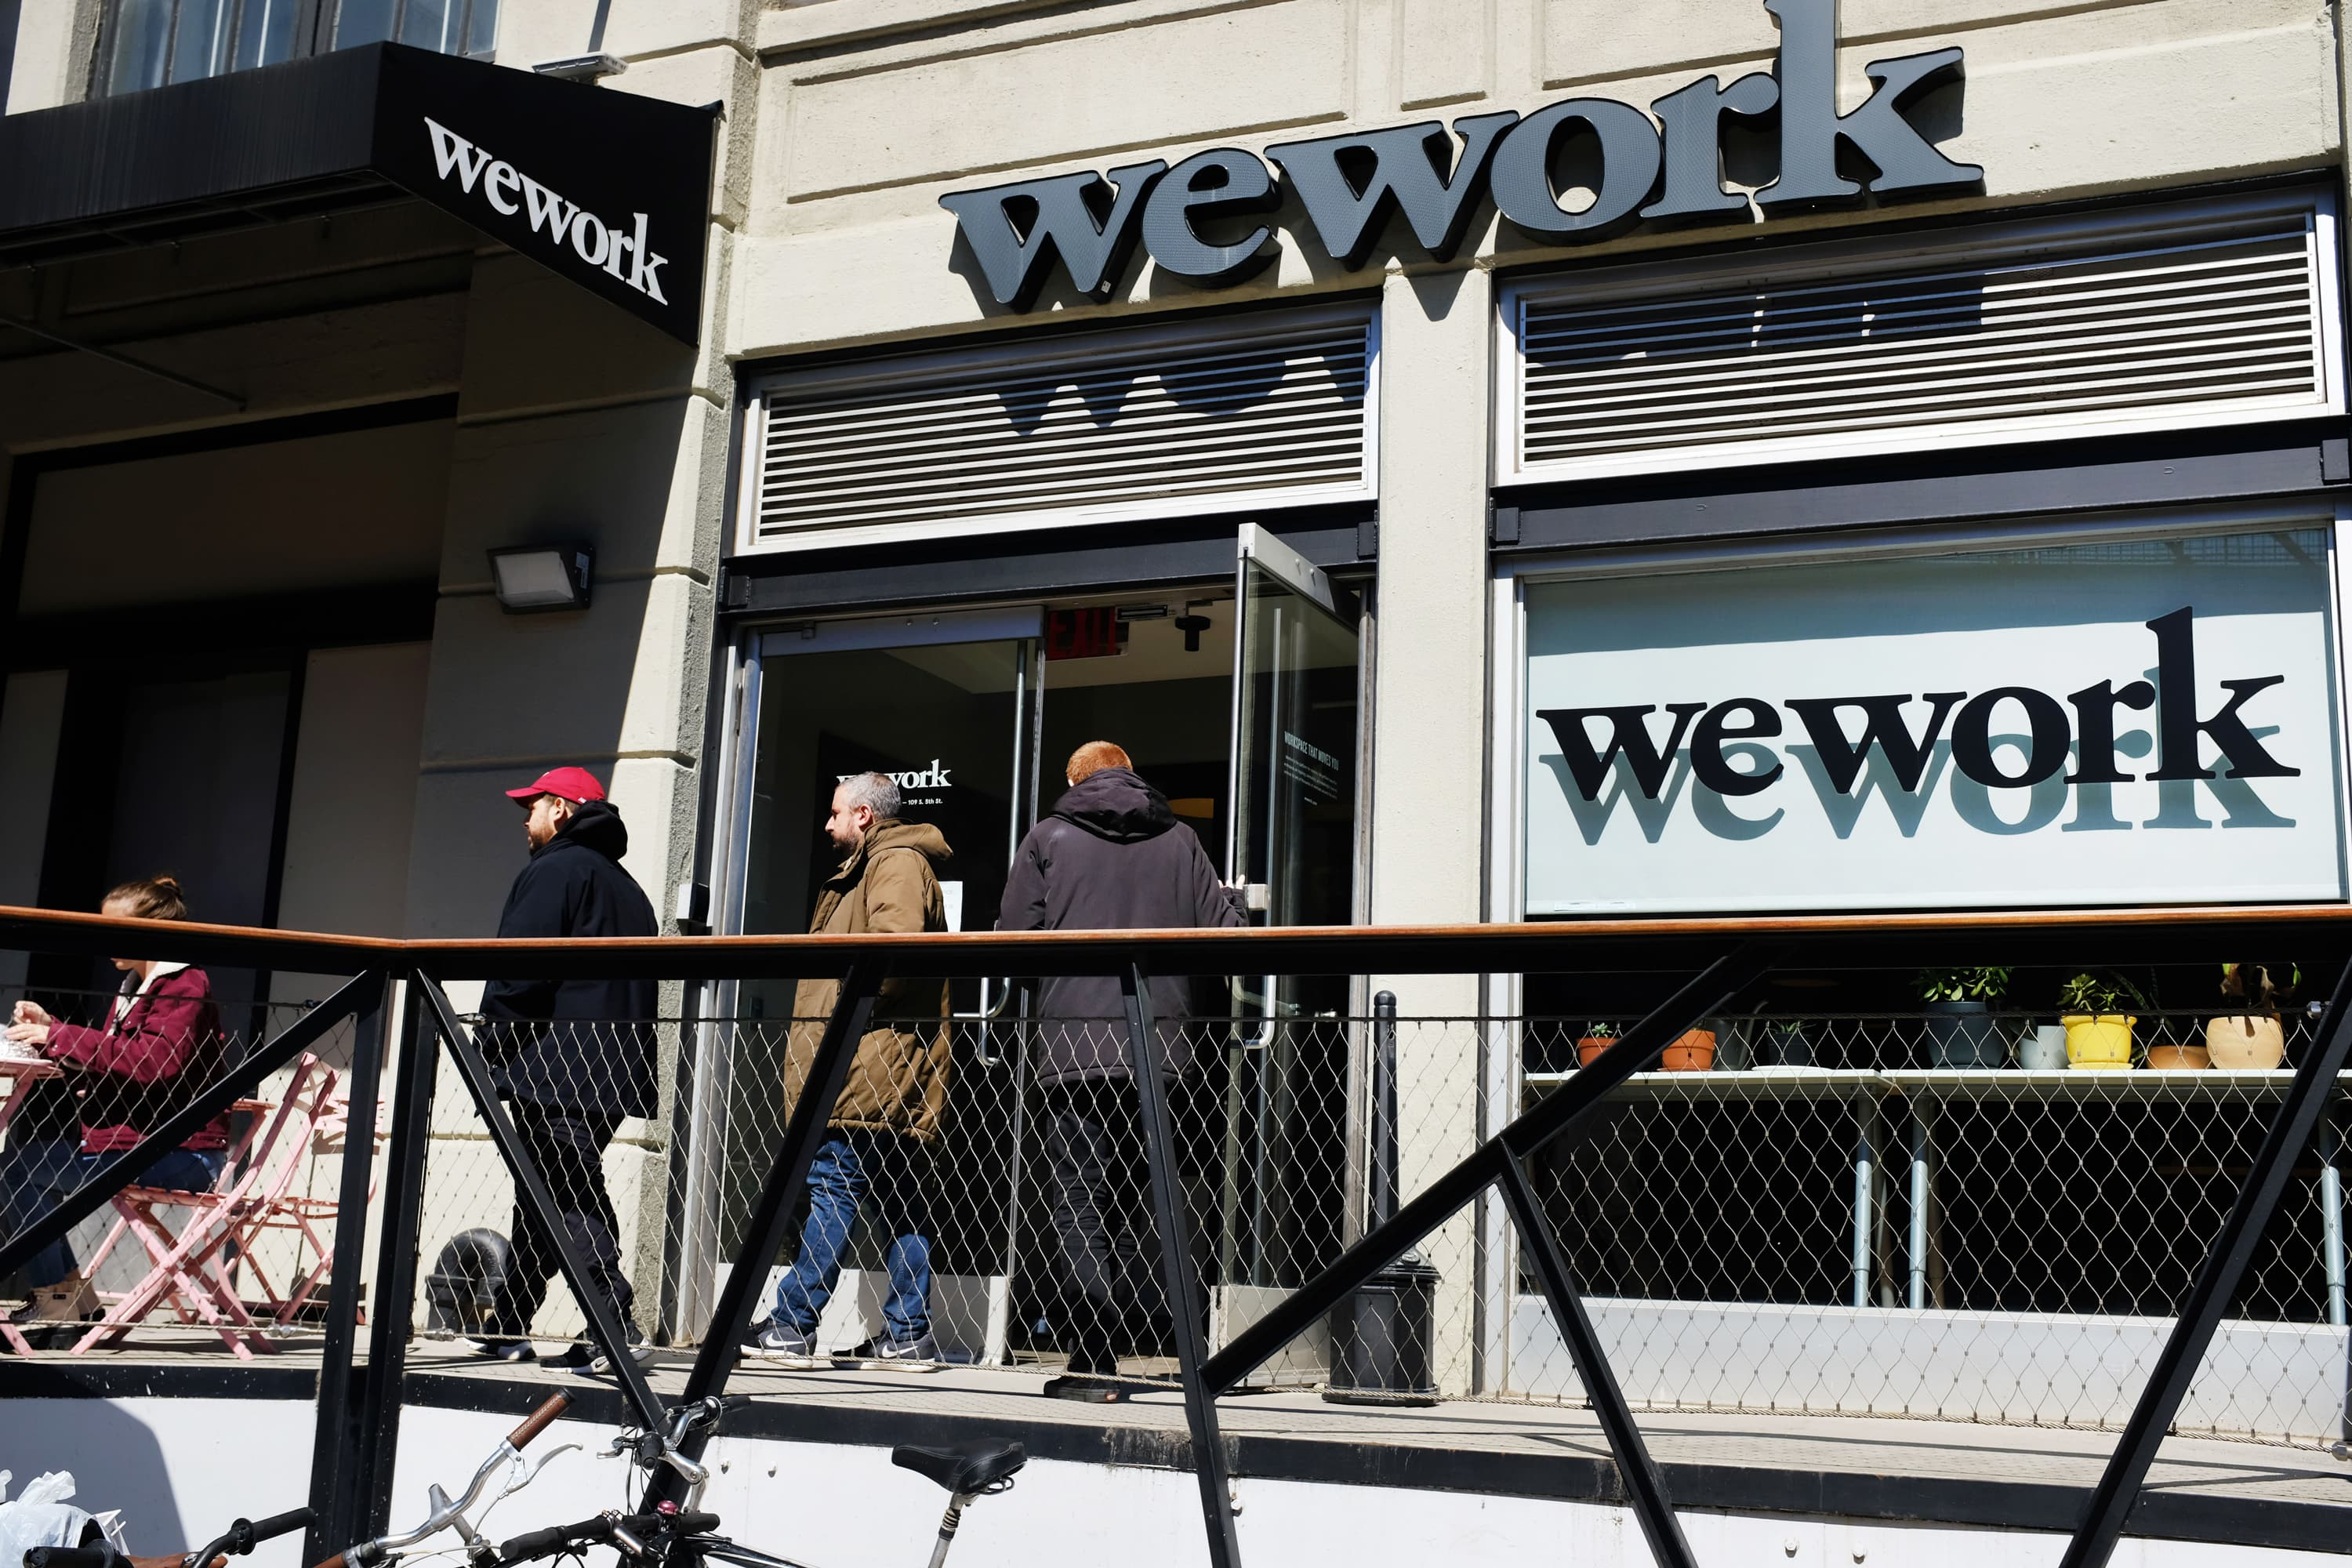 WeWork's on-again off-again IPO delayed again